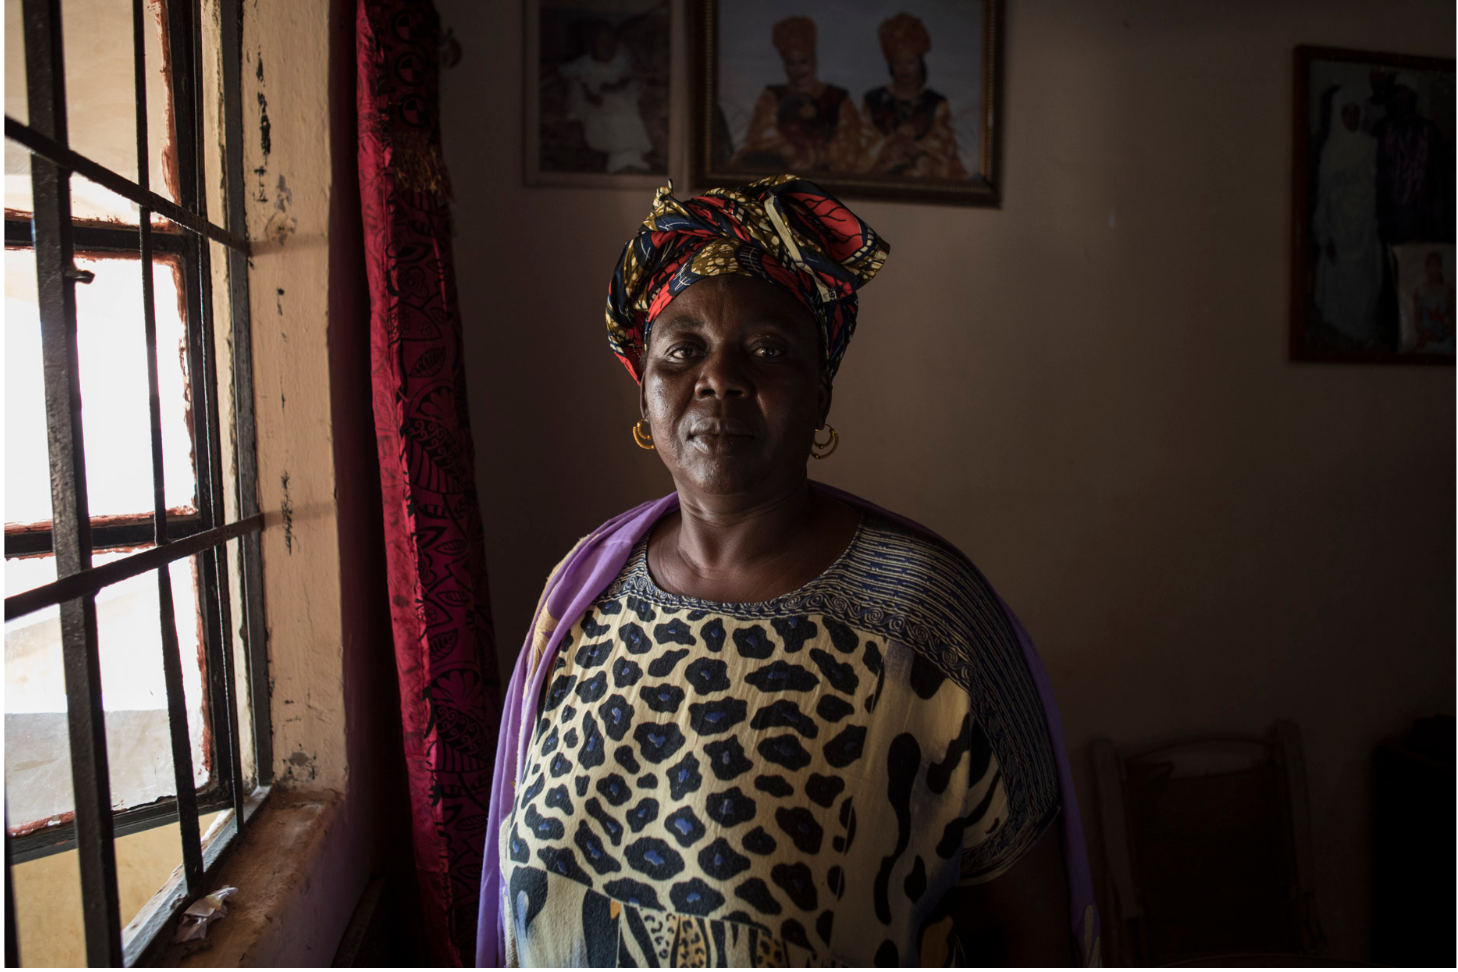 Jugana Susso, was arrested and detained during a peaceful demonstration by President Jammeh's feared security services. She was tortured and beaten so badly on her legs she has problems walking even around her own home ©Jason Florio